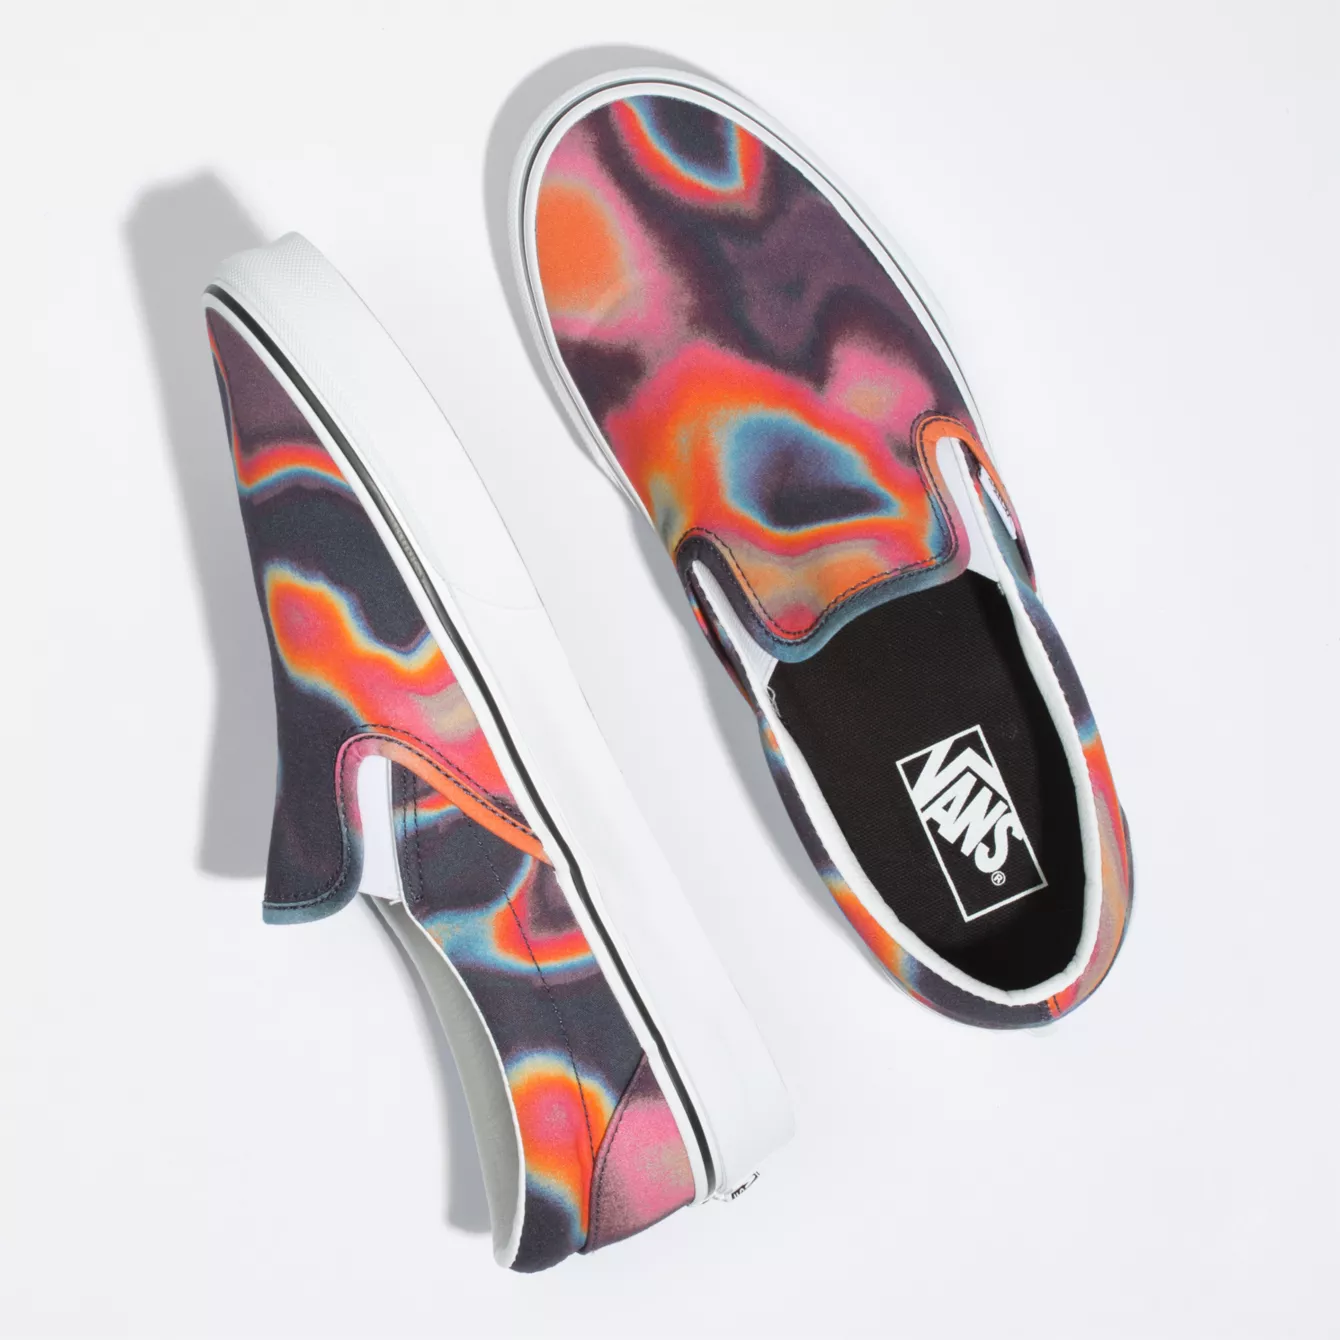 VANS M'S FOOTWEAR DARK AURA SLIP-ON